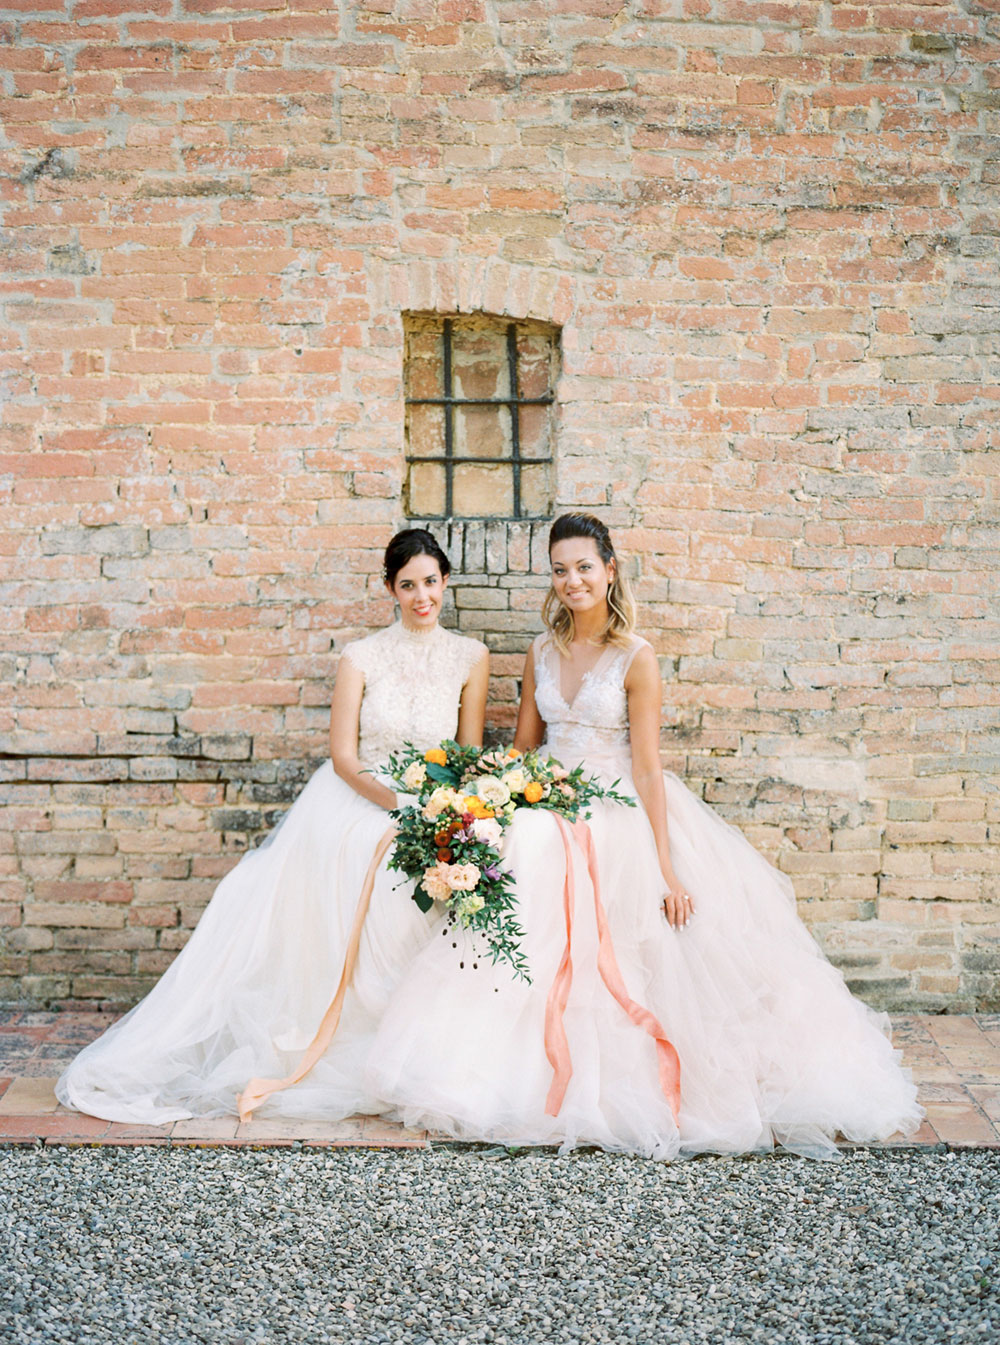 Linari-Tuscany-Elopement-Courtney-Michaela-110